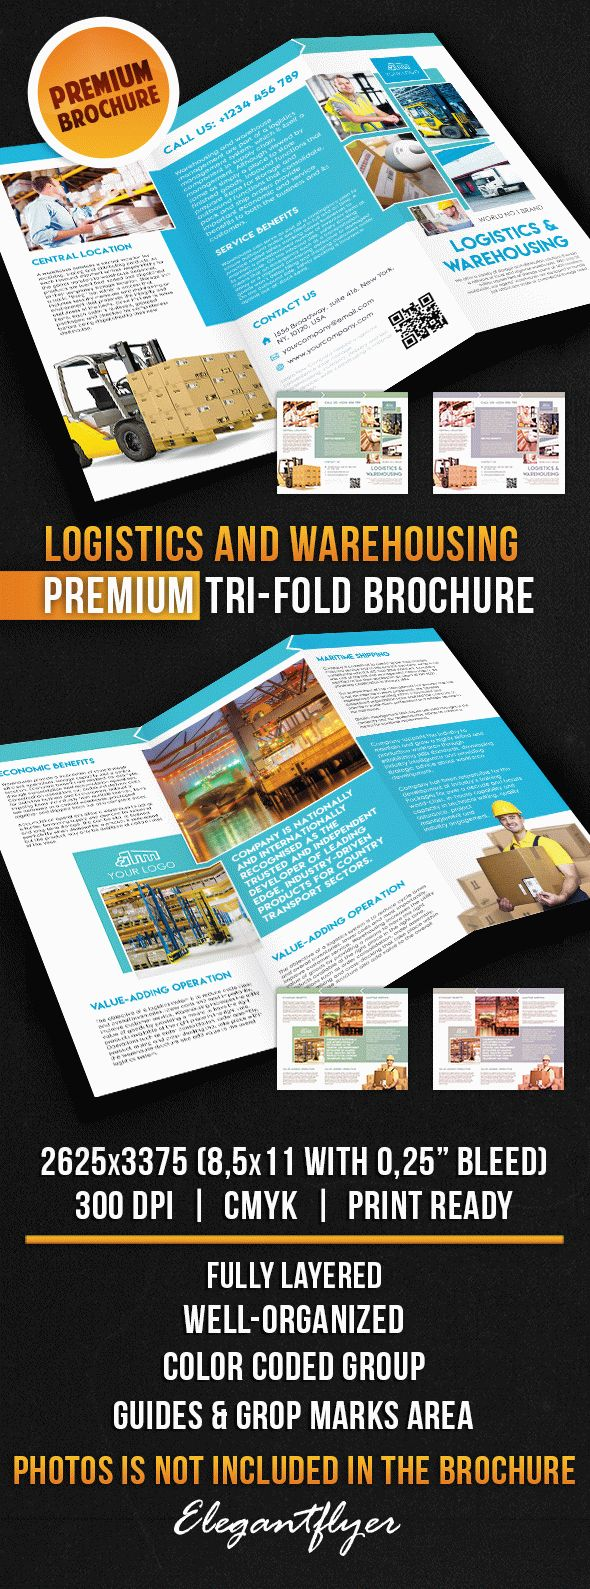 Brochure for Logistics And Warehousing